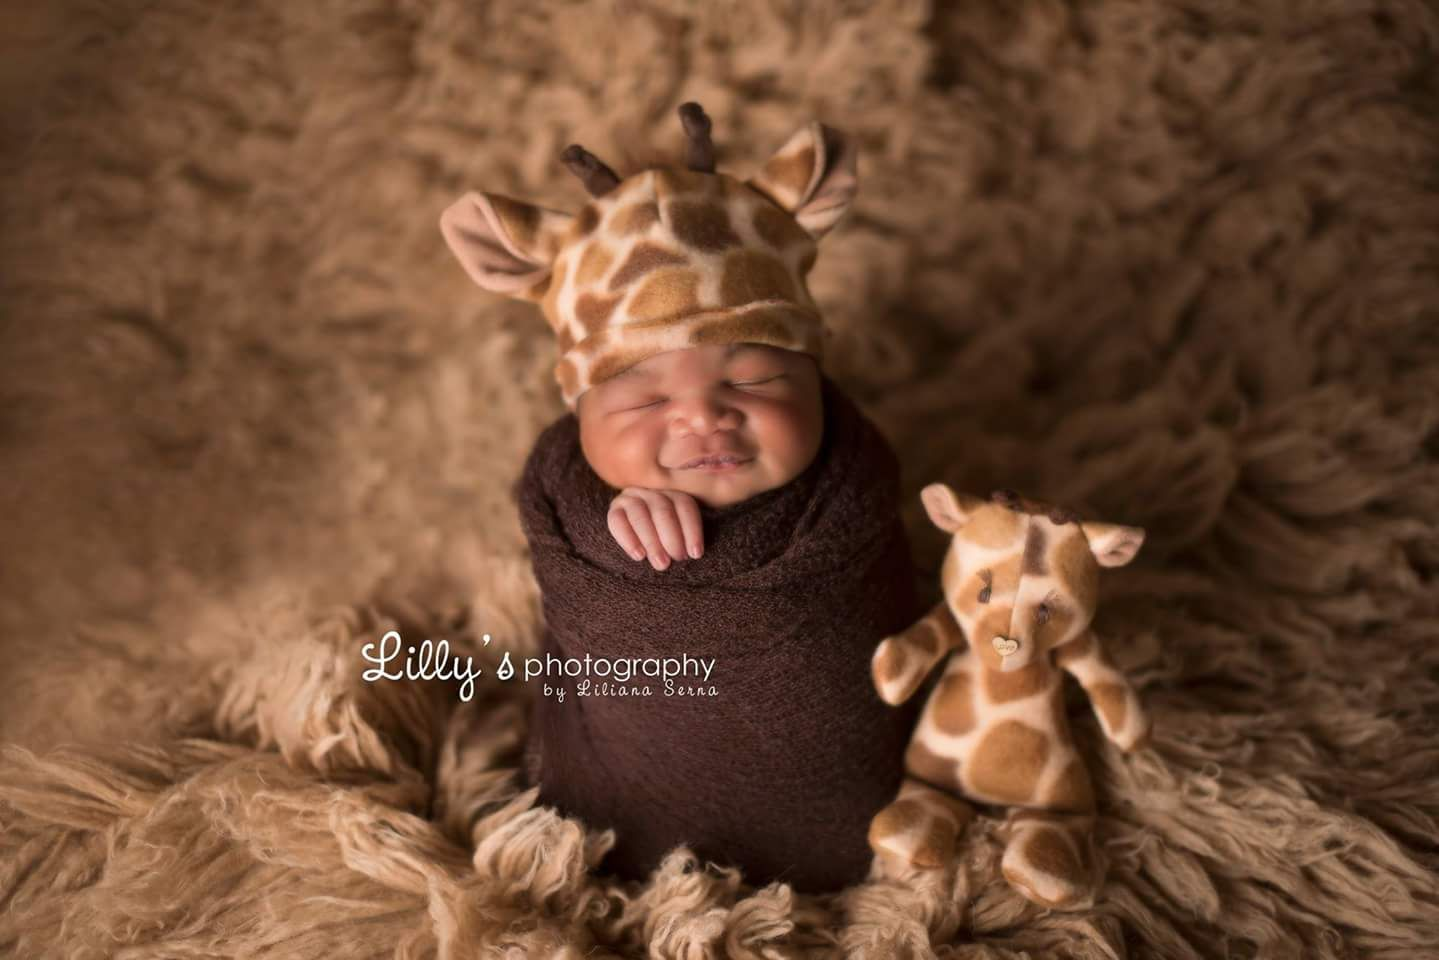 The ginger newborn baby beanie and lovie are made out of a cute giraffe print fleece